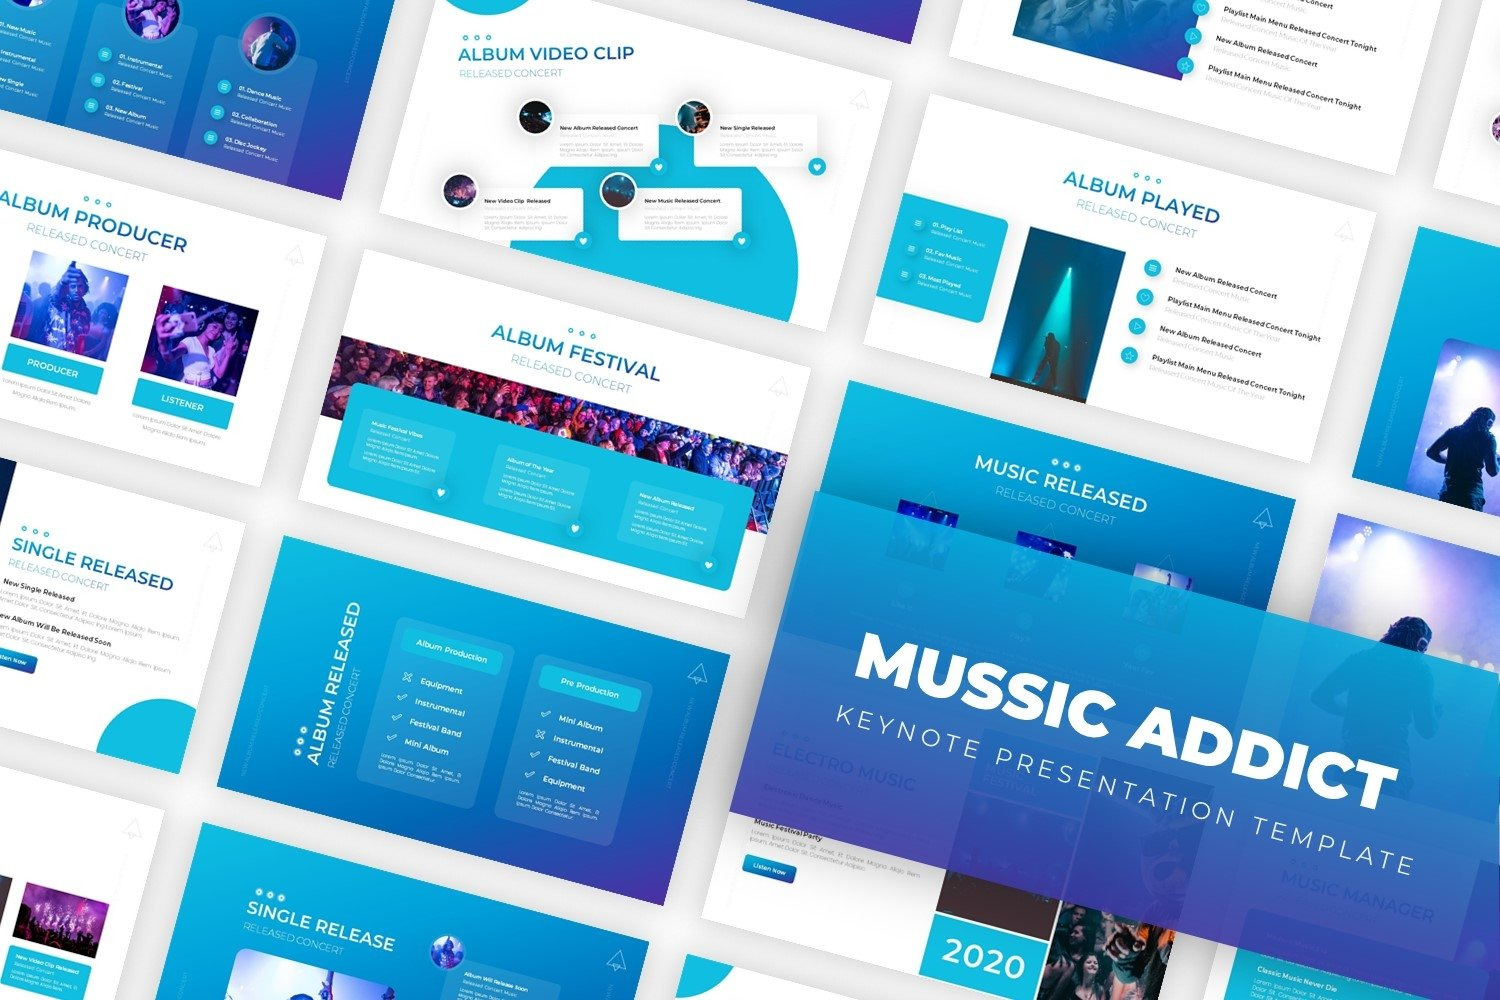 Music Addict - Keynote Template example image 1